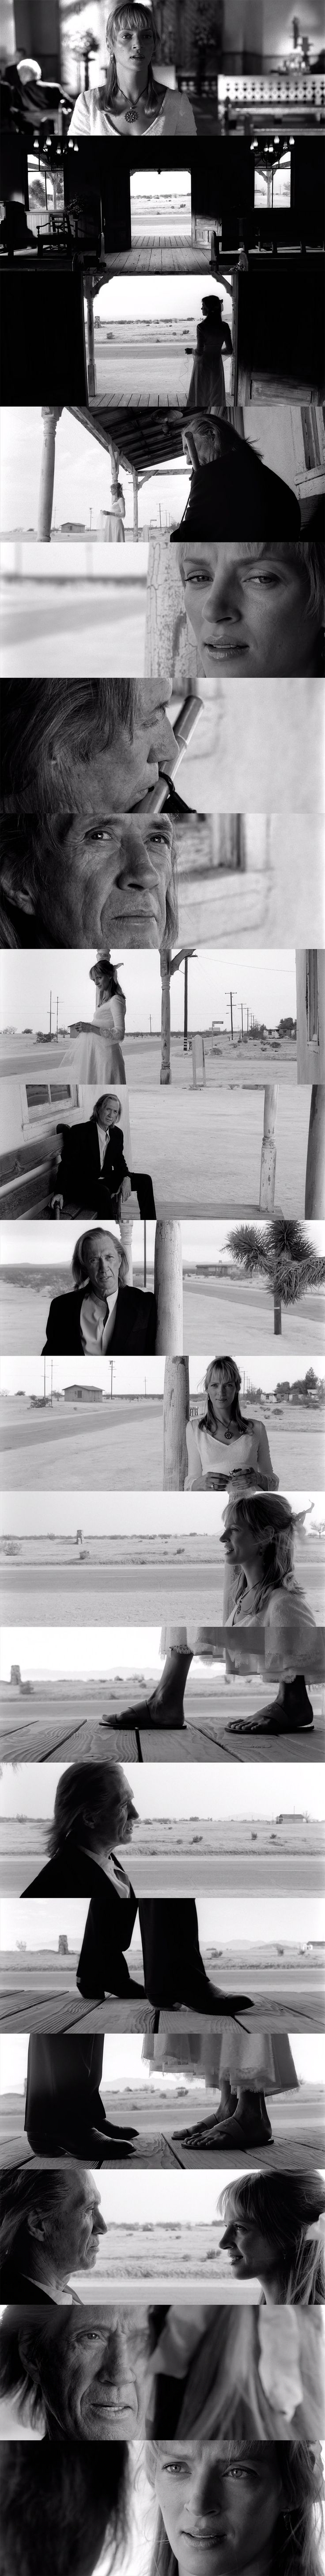 Kill Bill v1,v2 (2003, 2004) | dir. Quentin Tarantino | dop. Robert Richardson